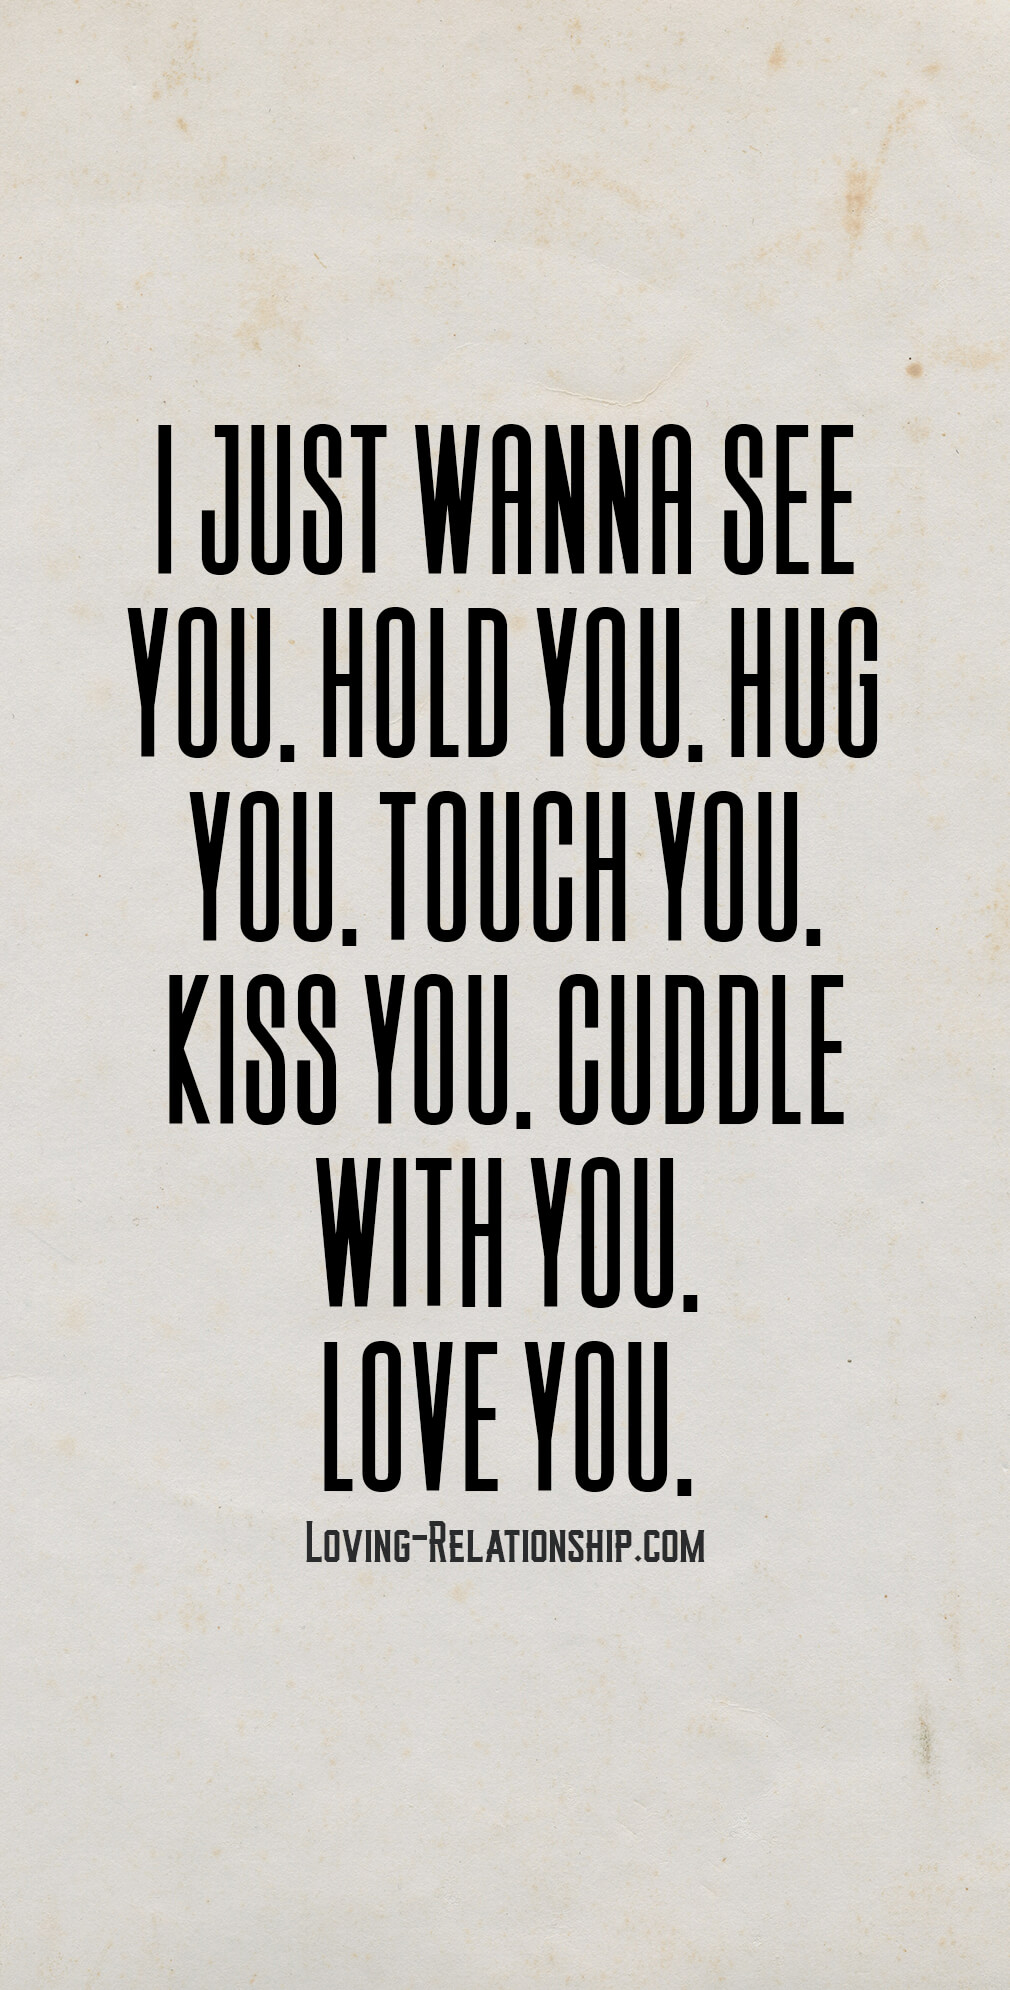 I wanna see you quotes